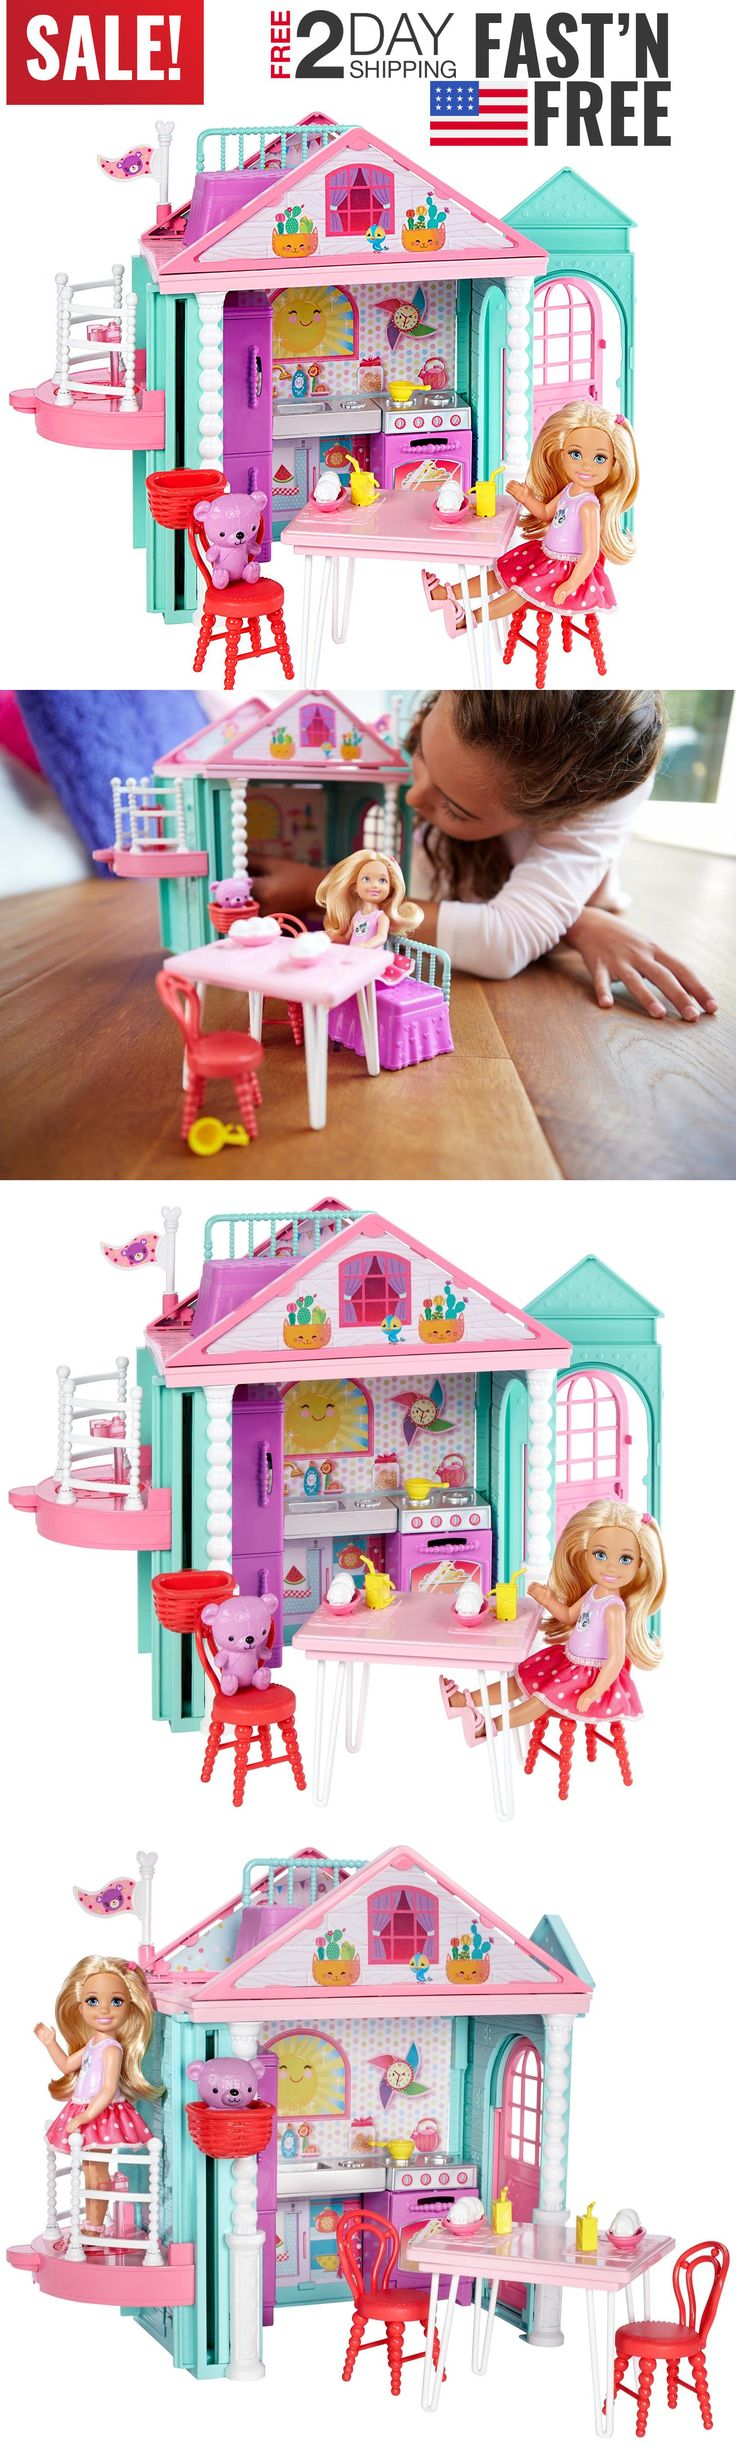 Developmental Baby Toys 100227: Toys For Girls Doll House Kids Toddler 4 5 6 7 8 9 Year Old Age Girls Cool Toy -> BUY IT NOW ONLY: $32.99 on eBay!